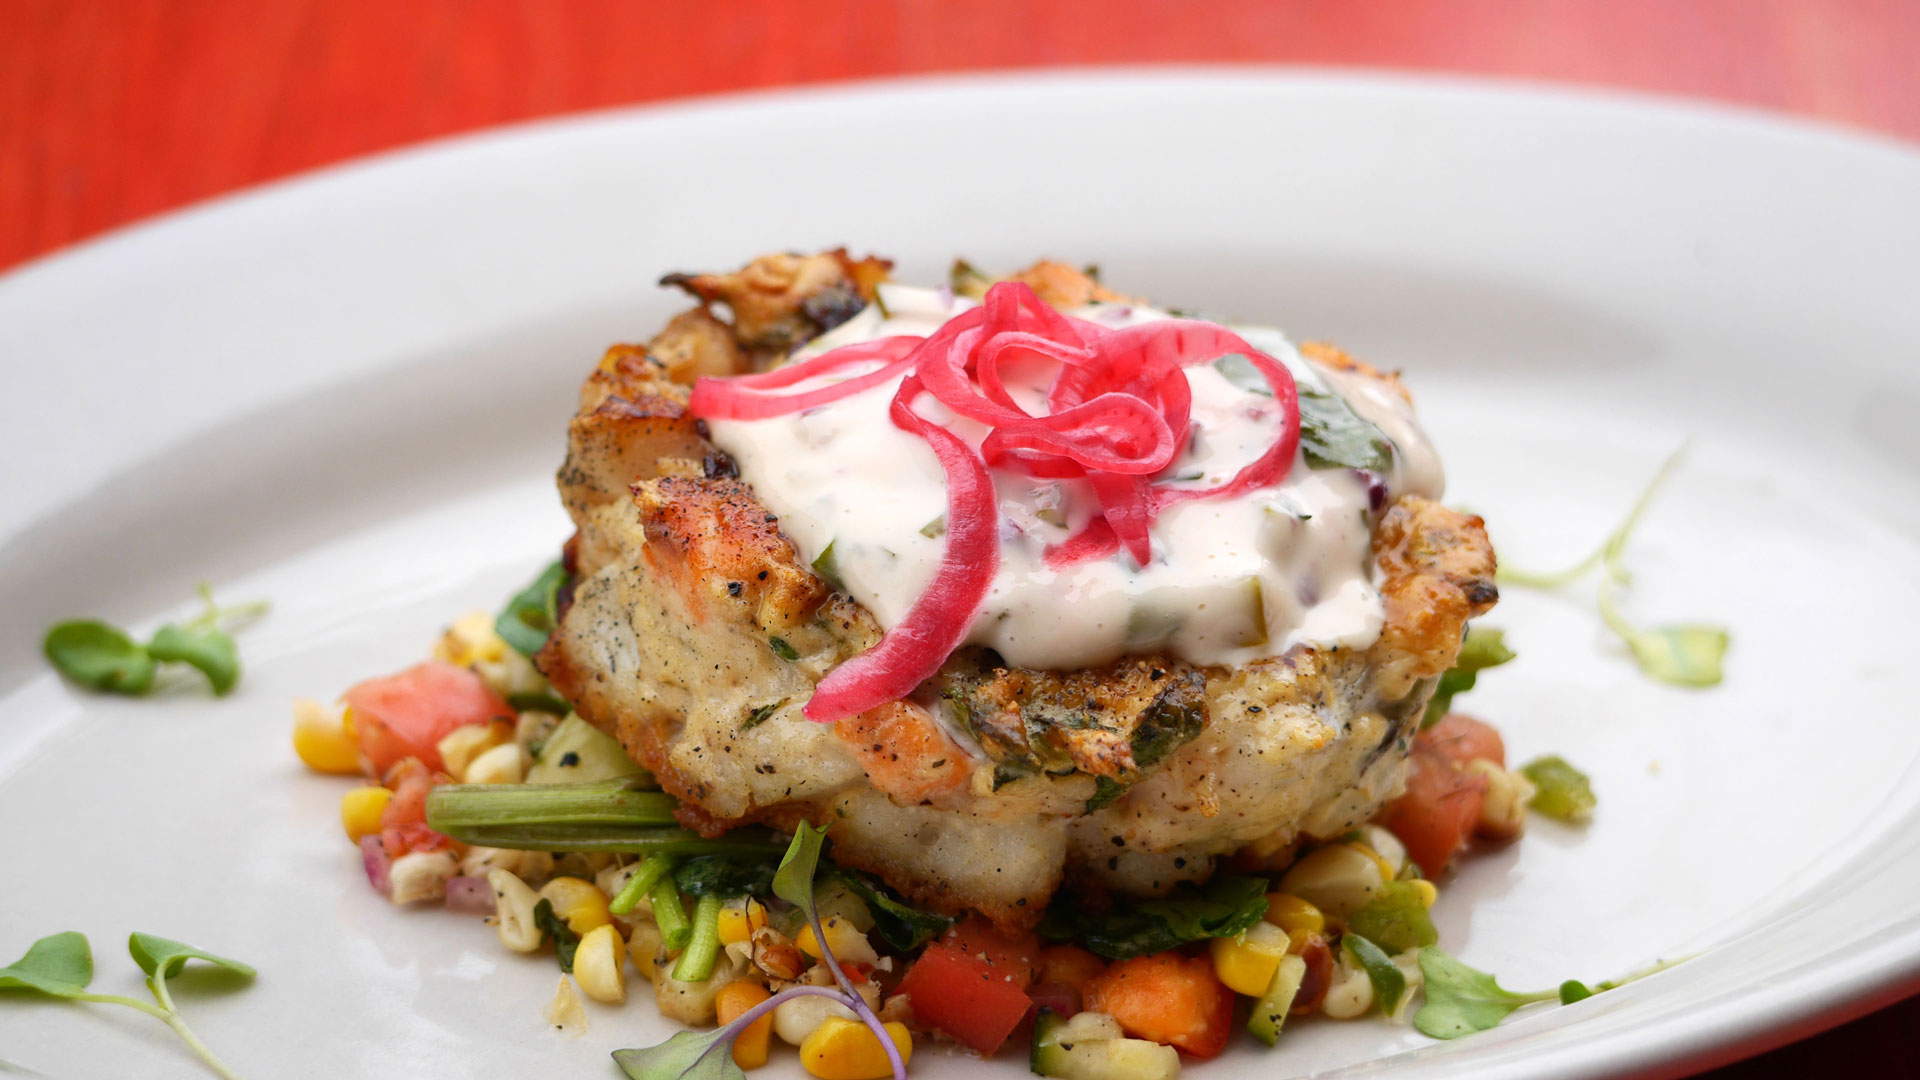 Fish Cake on plate